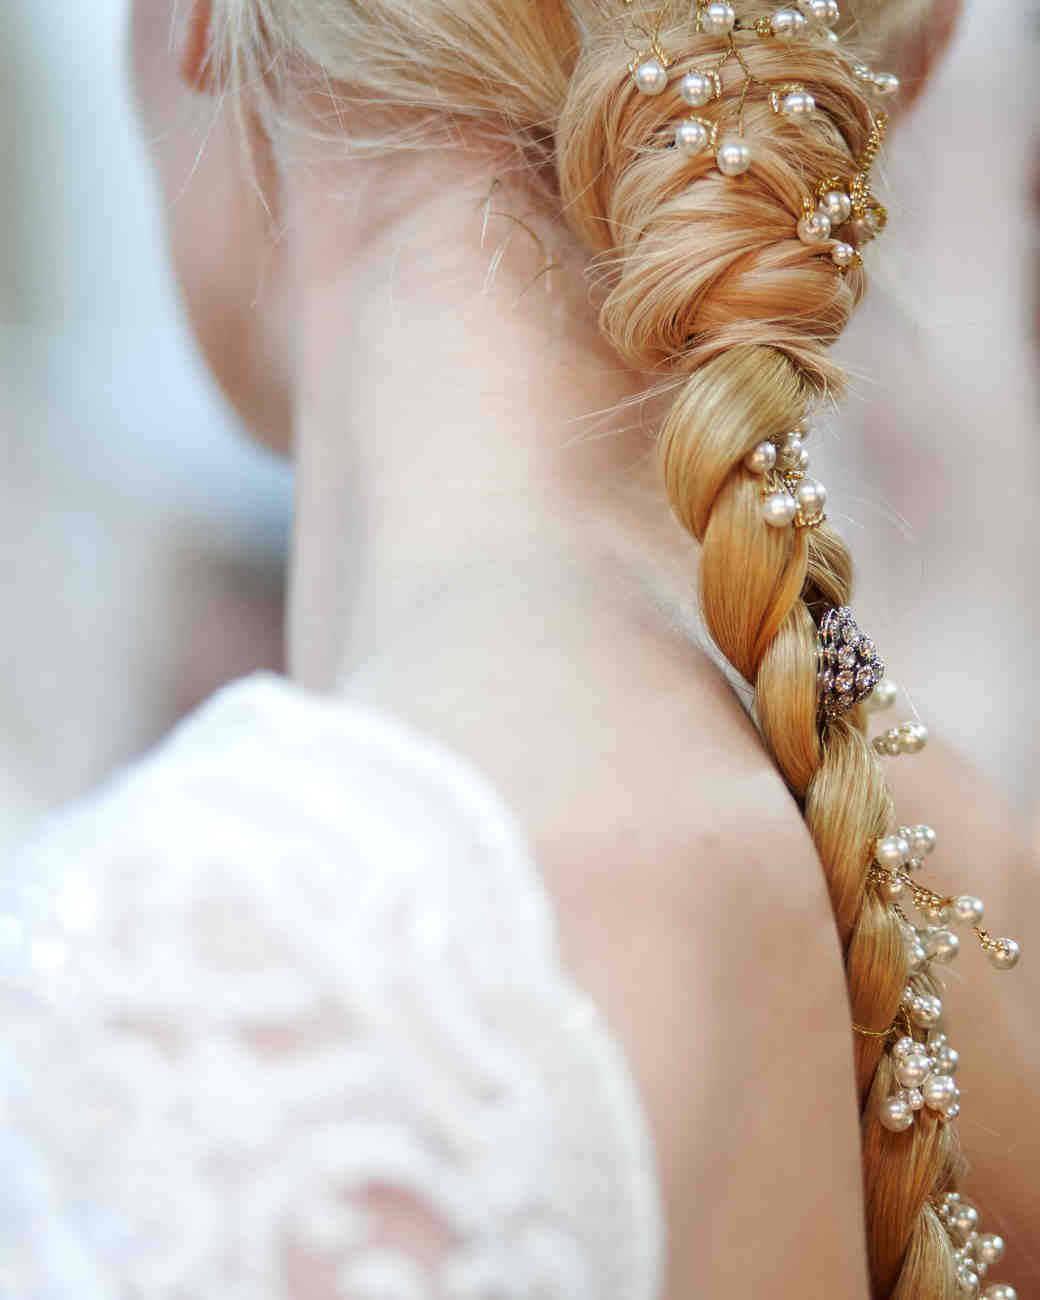 Wedding Hairstyle For Bride: Wedding Hairstyles For Bows, Buds, Tiaras, And More From